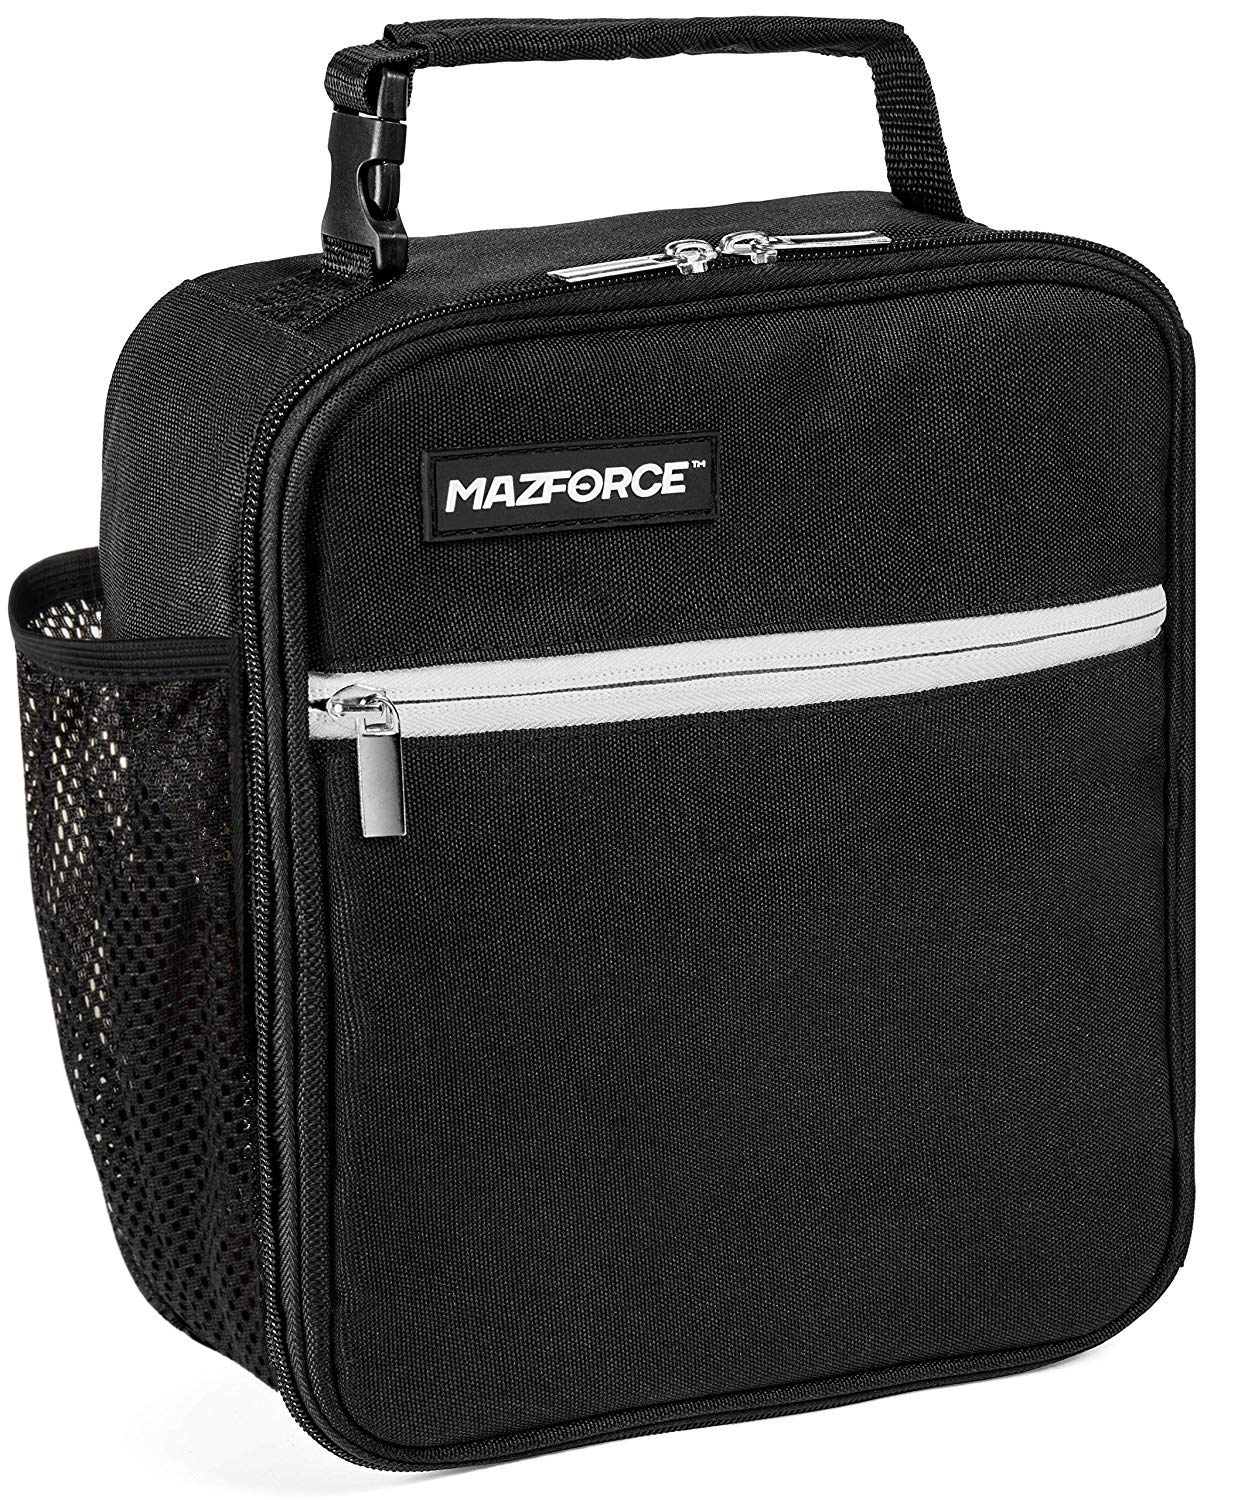 91466e1df80a MAZFORCE Original Lunch Box Insulated Lunch Bag - Tough & Spacious Adult  Lunchbox to Seize Your Day (Force Black - Lunch Bags Designed in California  ...